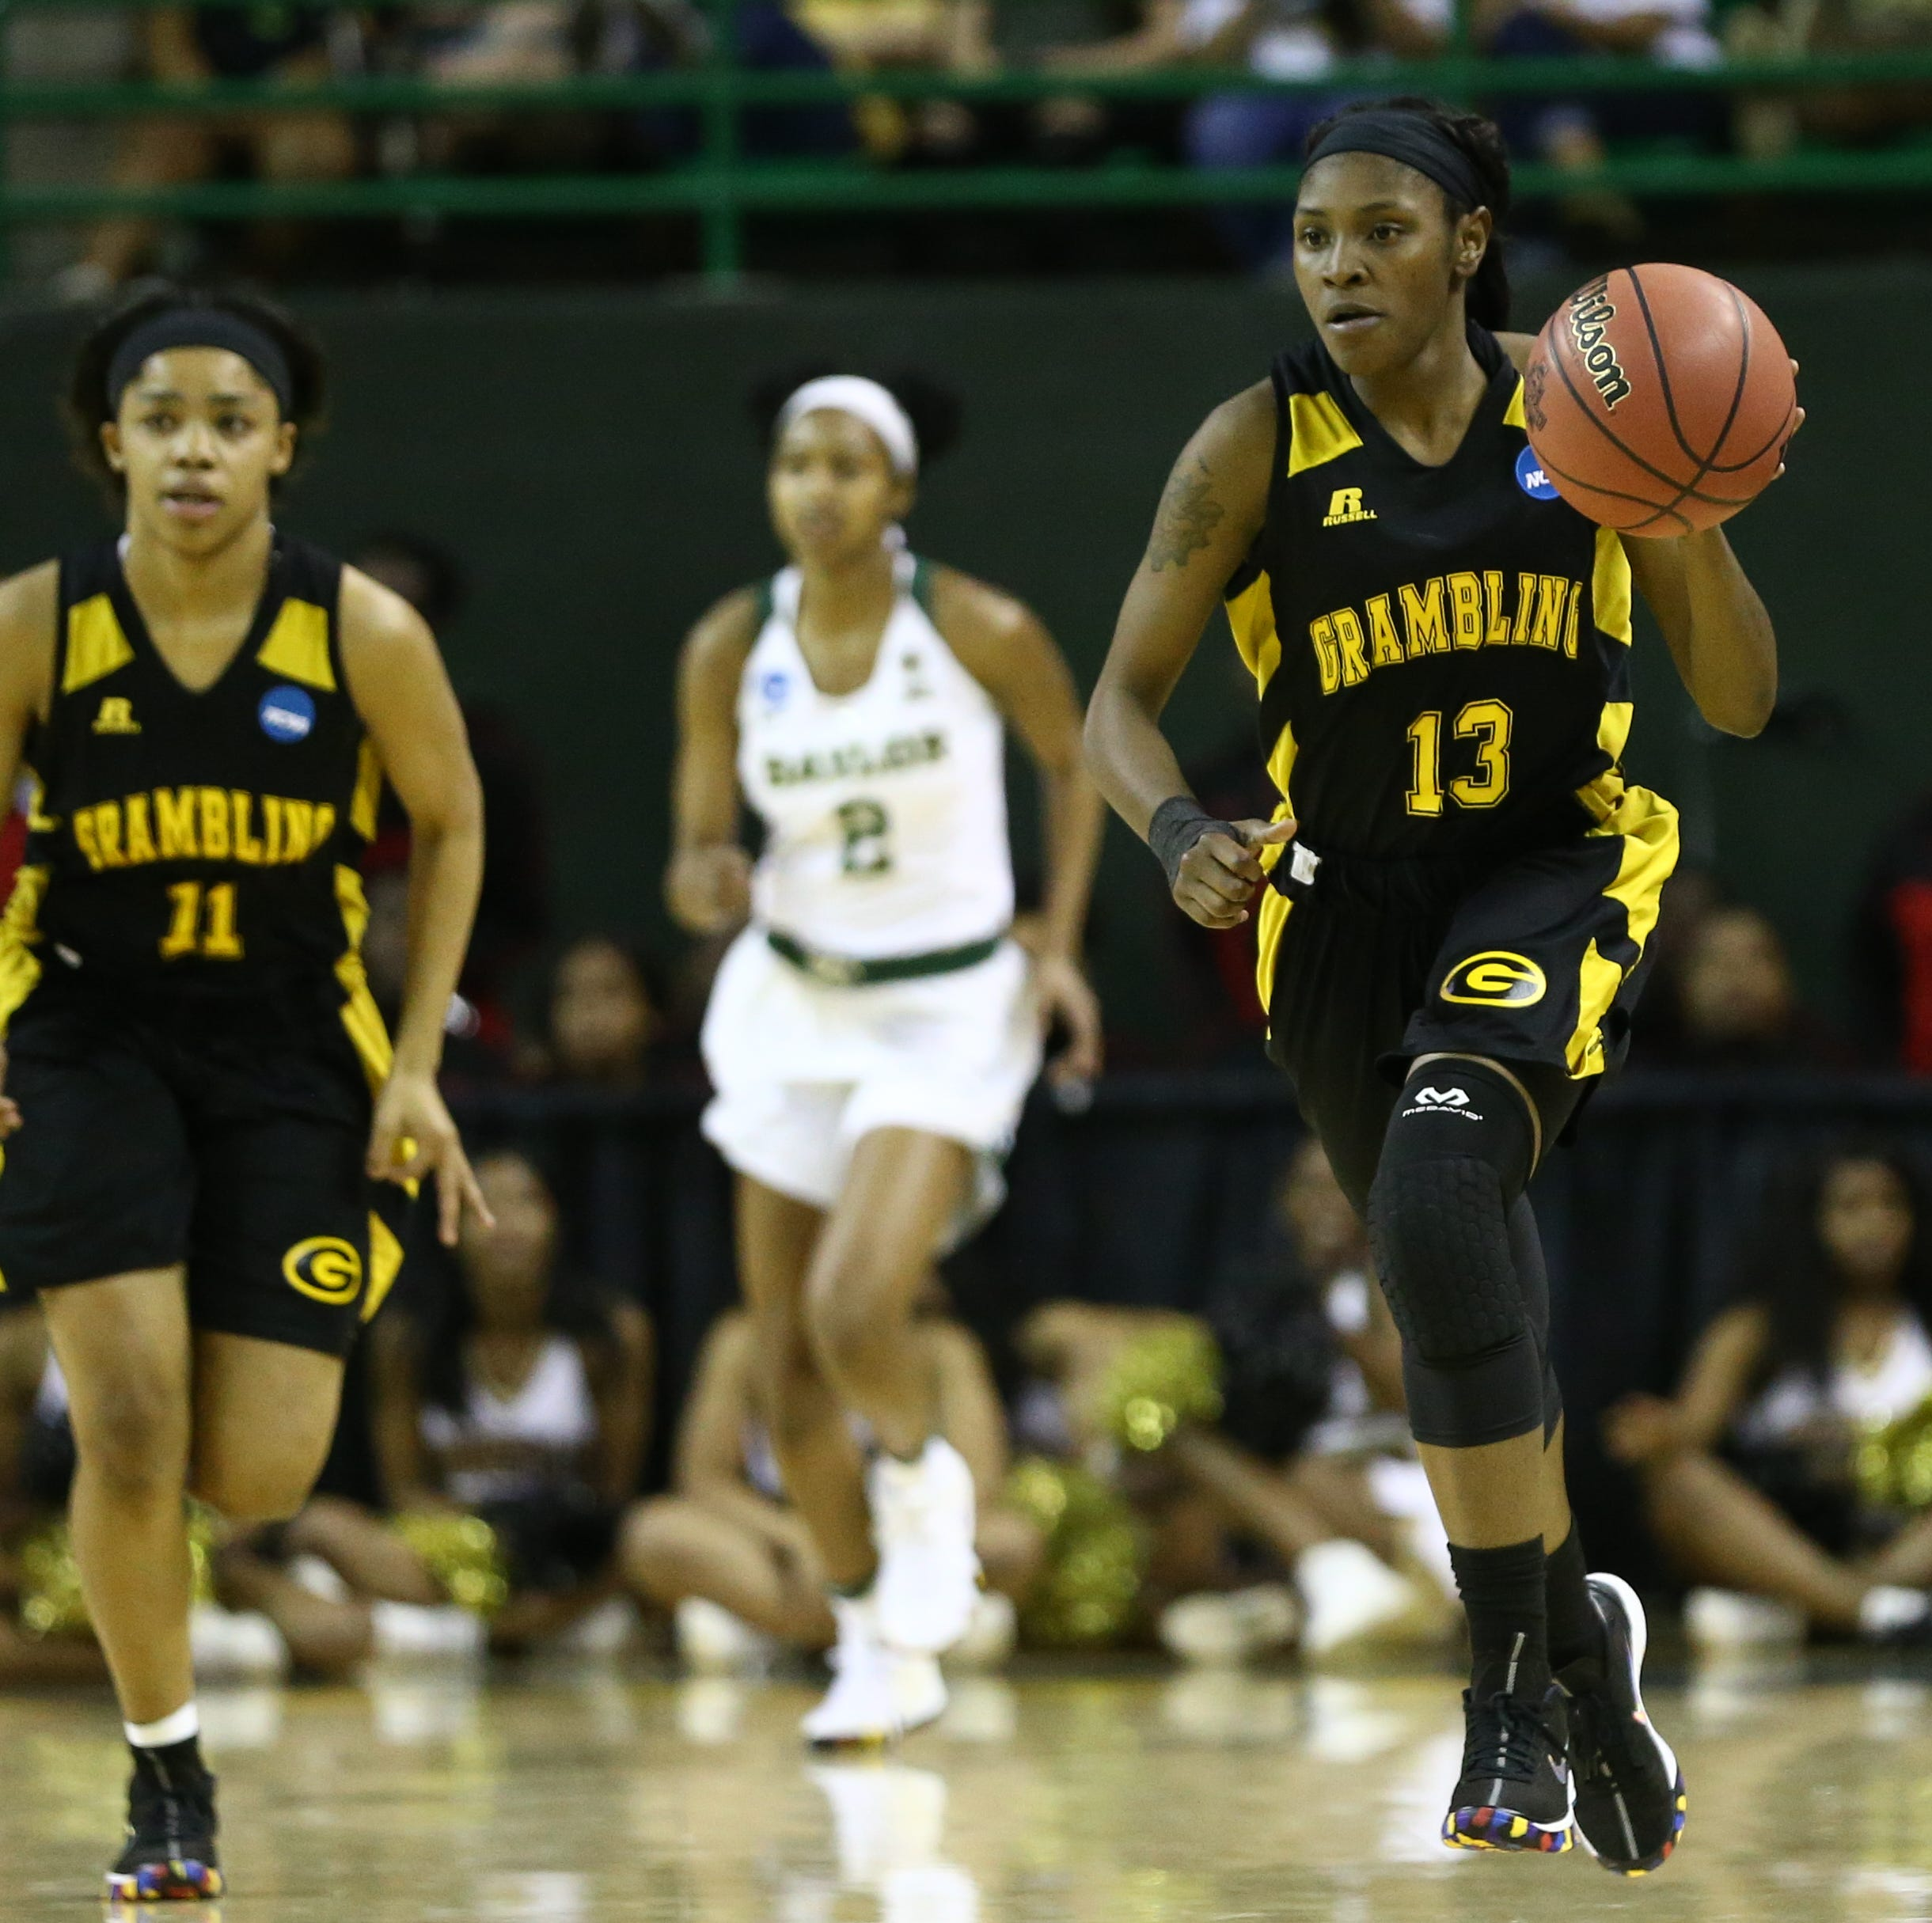 Grambling's Jazmin Boyd reaches milestone in loss to Southern Miss